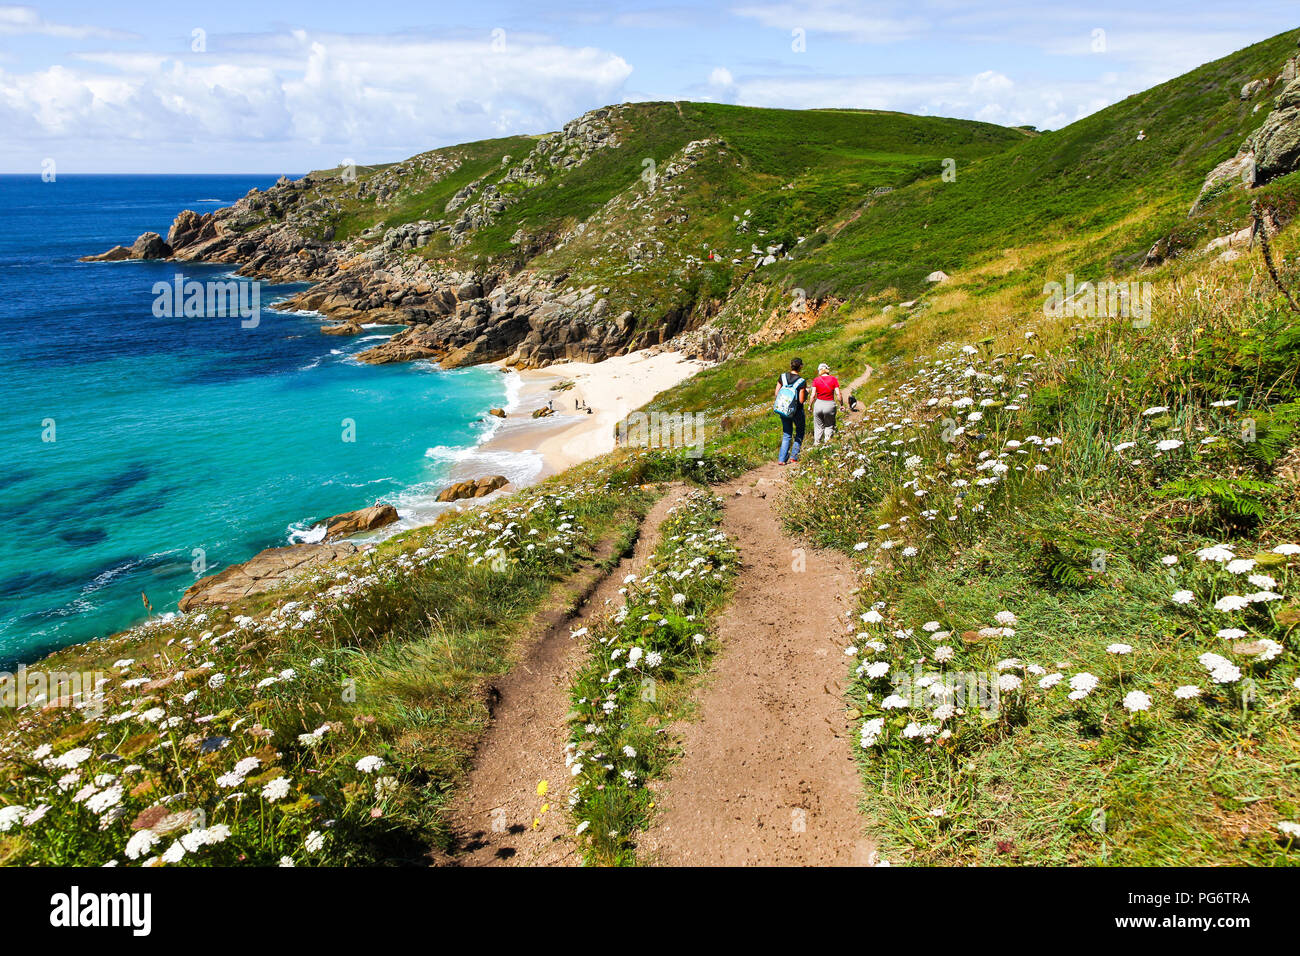 people-walking-on-the-footpath-above-porthchapel-or-porth-chapel-beach-cornwall-south-west-england-uk-PG6TRA.jpg